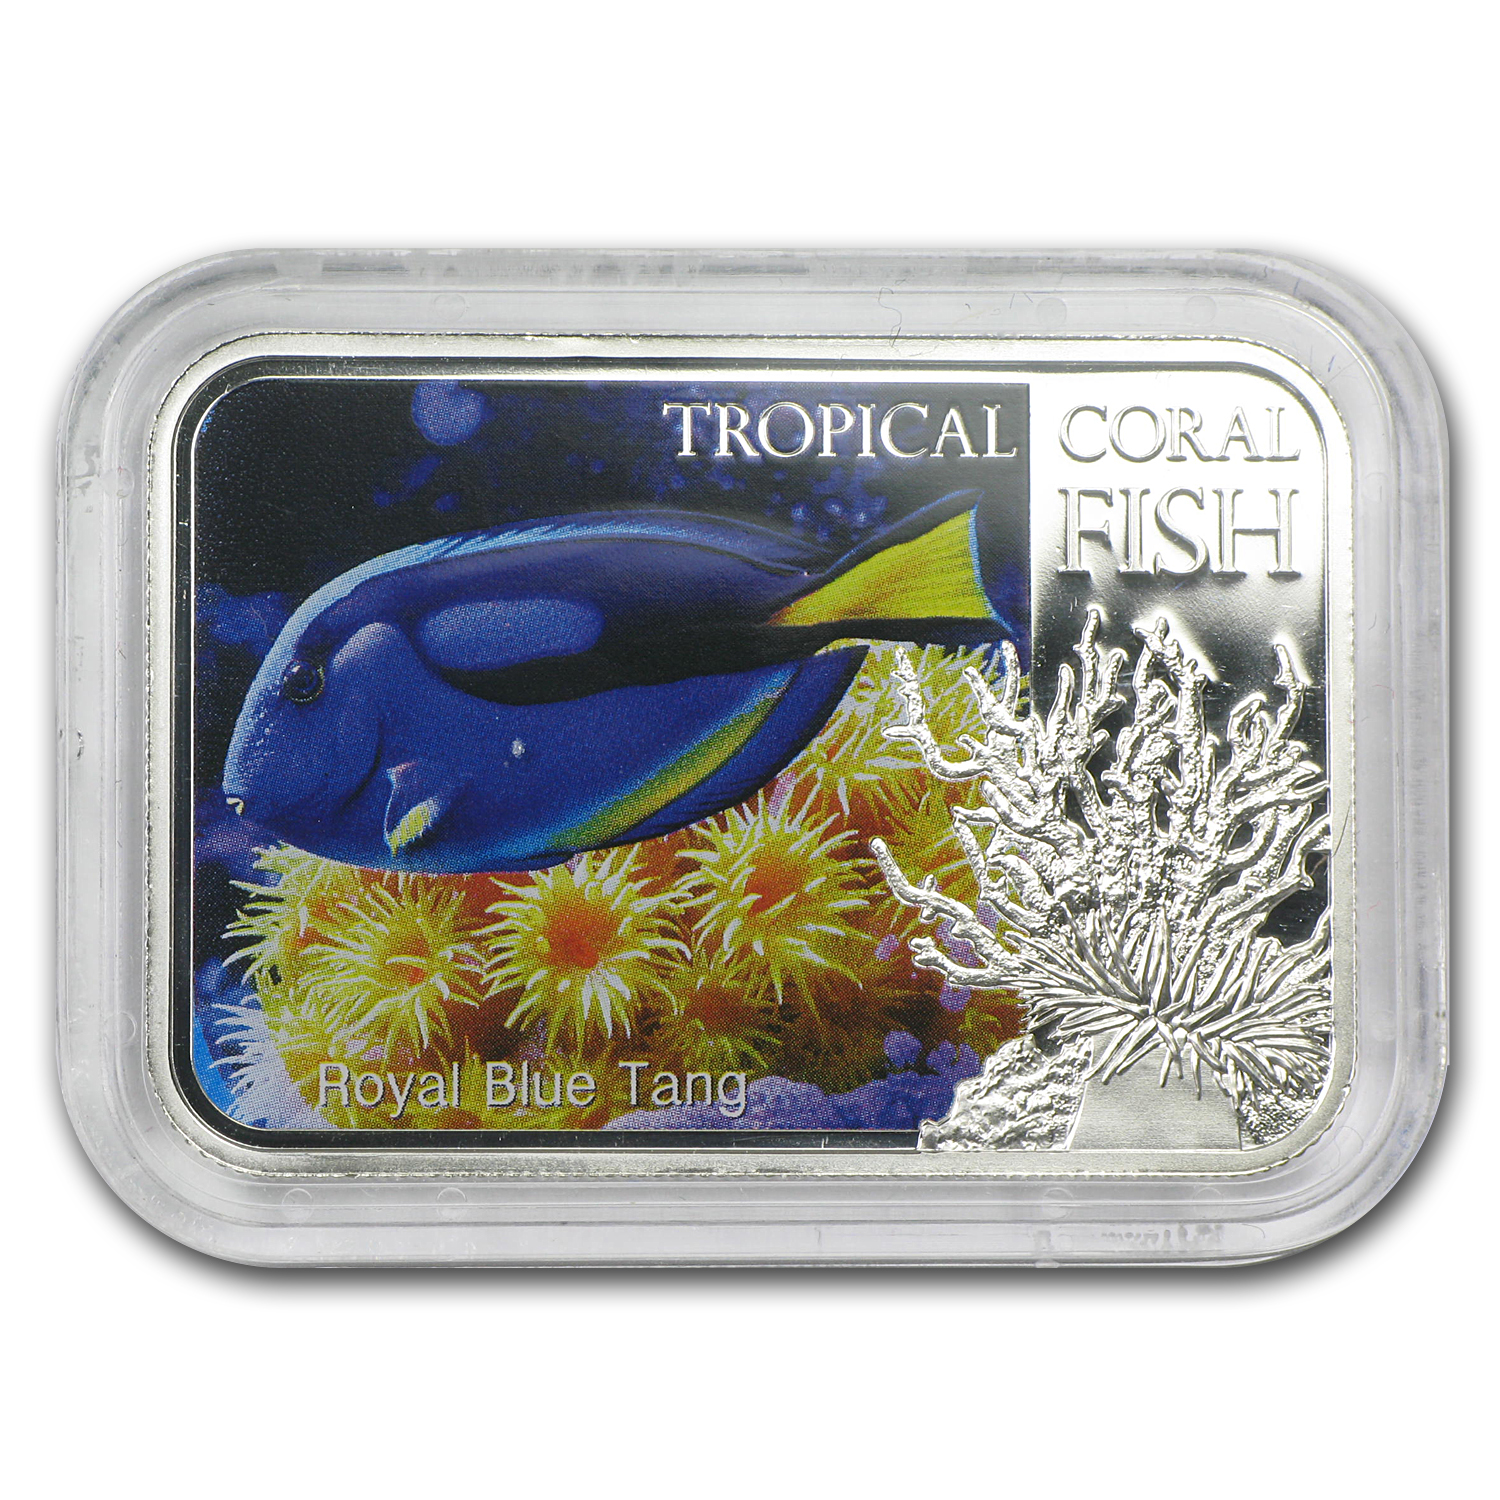 2013 Niue 1 oz Silver $1 Royal Blue Tang Proof